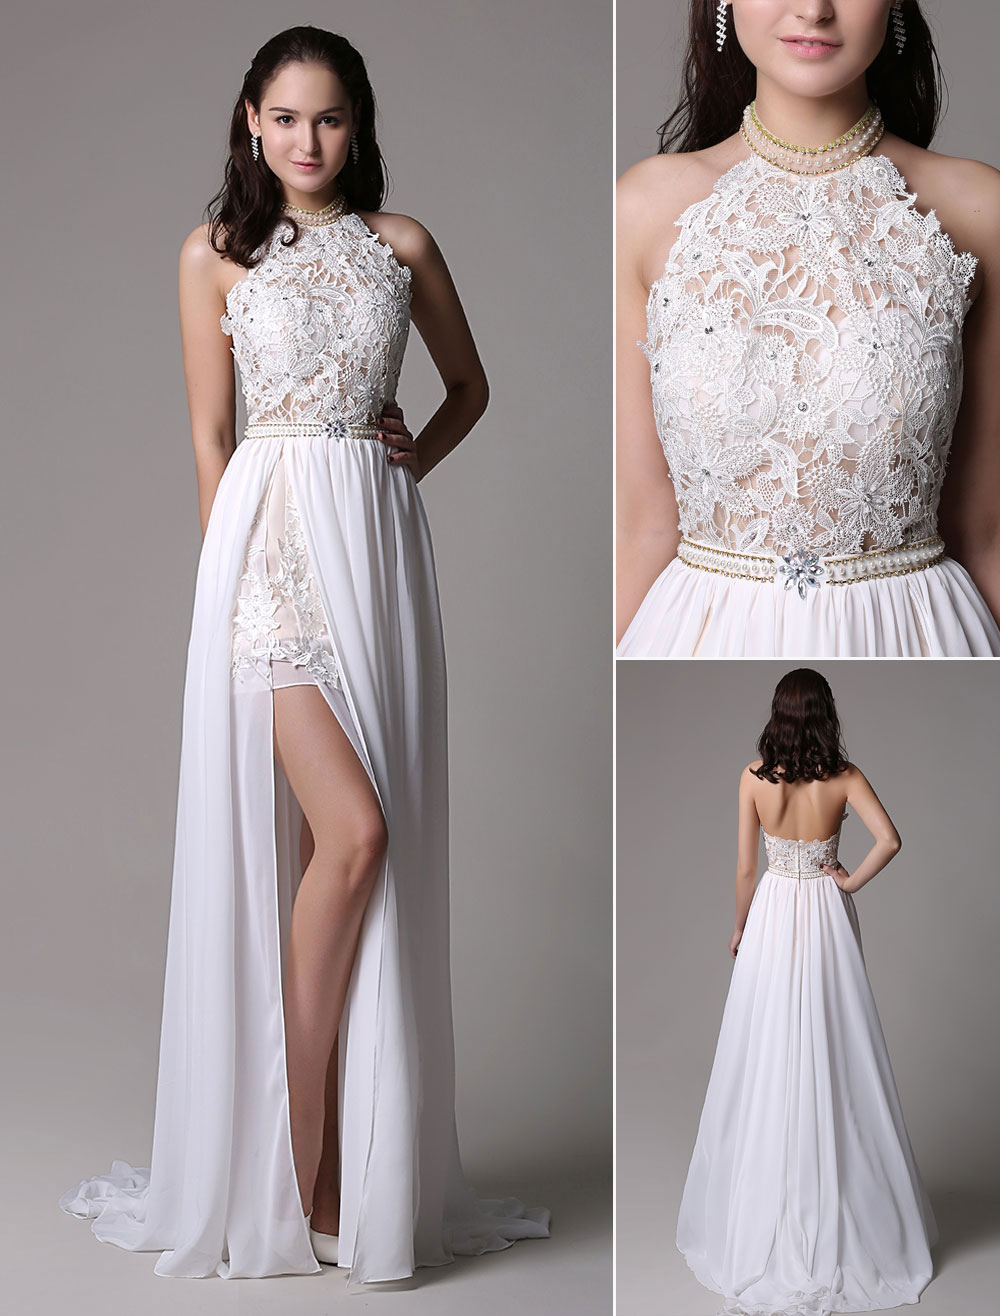 29ecb9f8467e ... White Prom Dresses 2019 Long Ivory Halter Backless Evening Dress Lace  Applique Beading Chiffon Split Party. 123. 40%OFF. Color:White